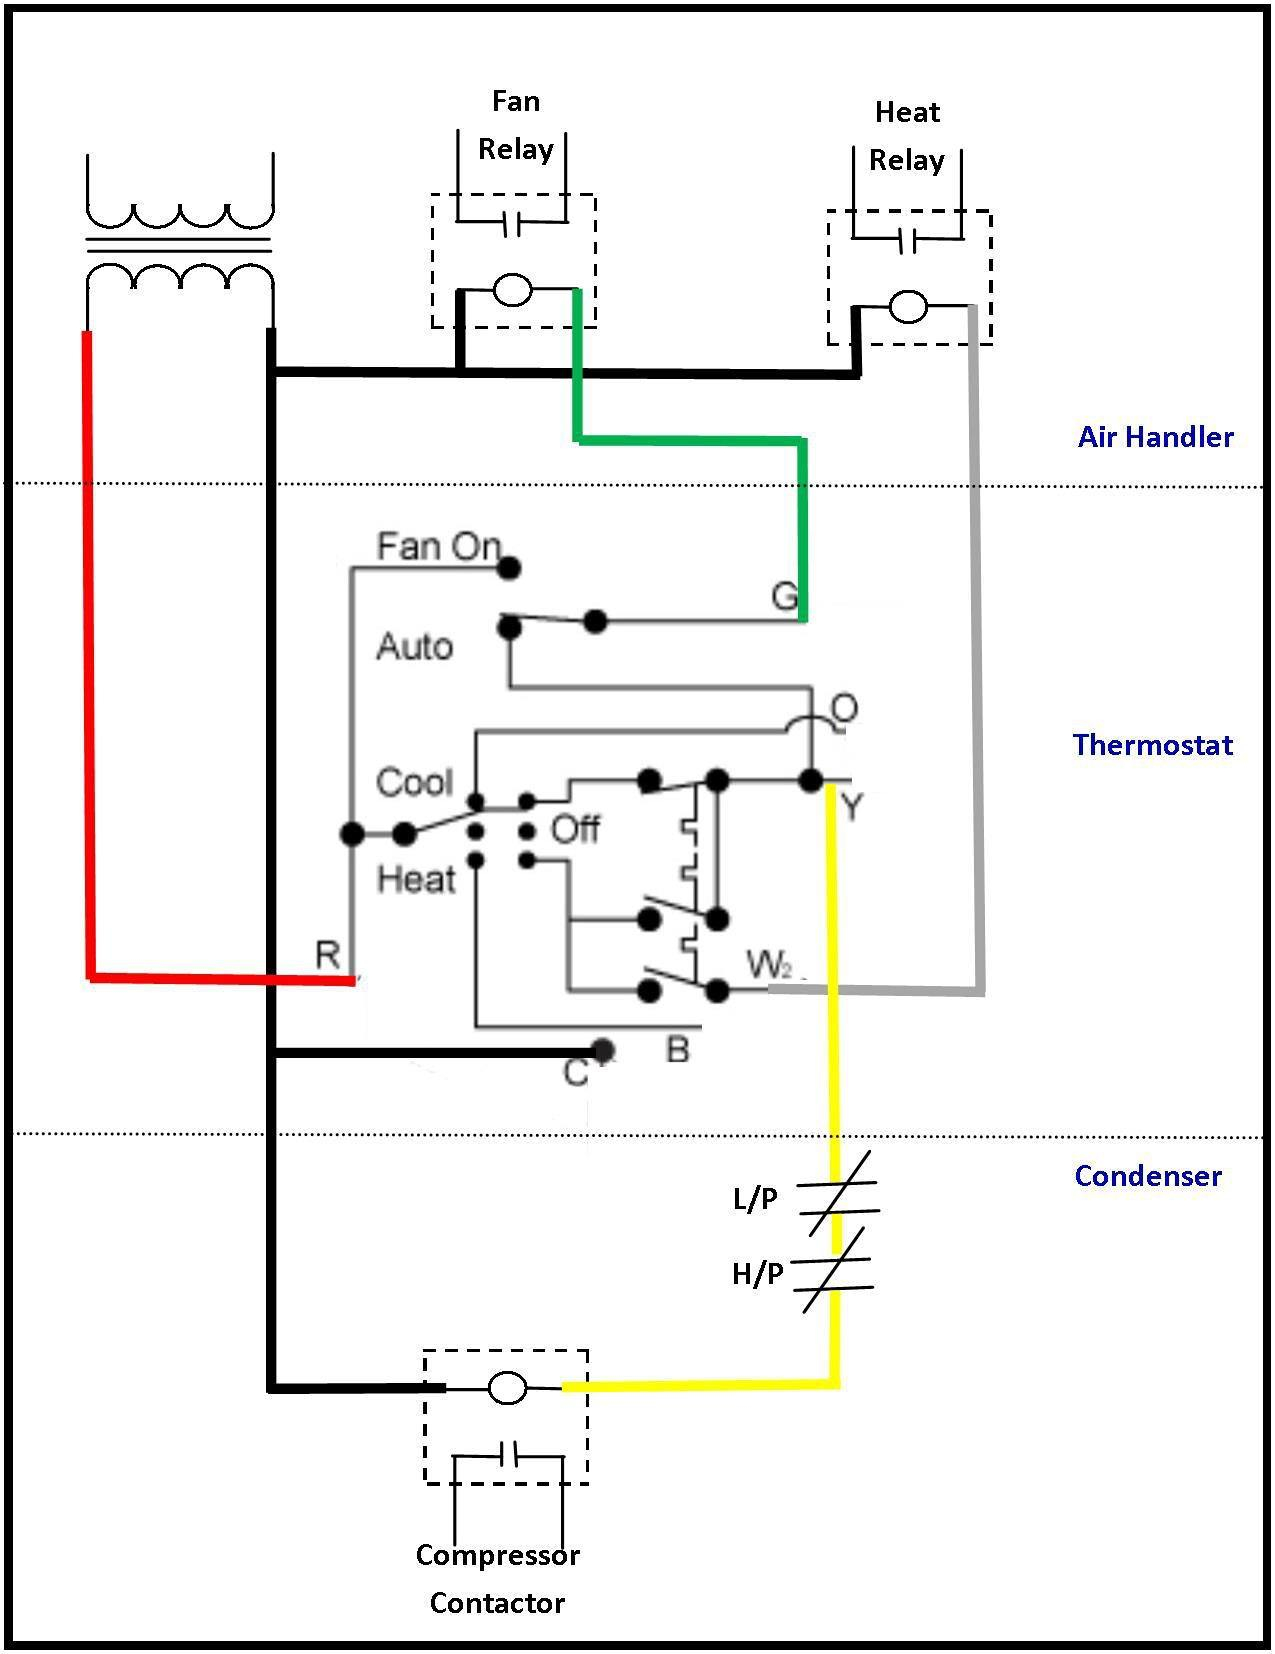 power sentry emergency ballast wiring diagram collection. Black Bedroom Furniture Sets. Home Design Ideas